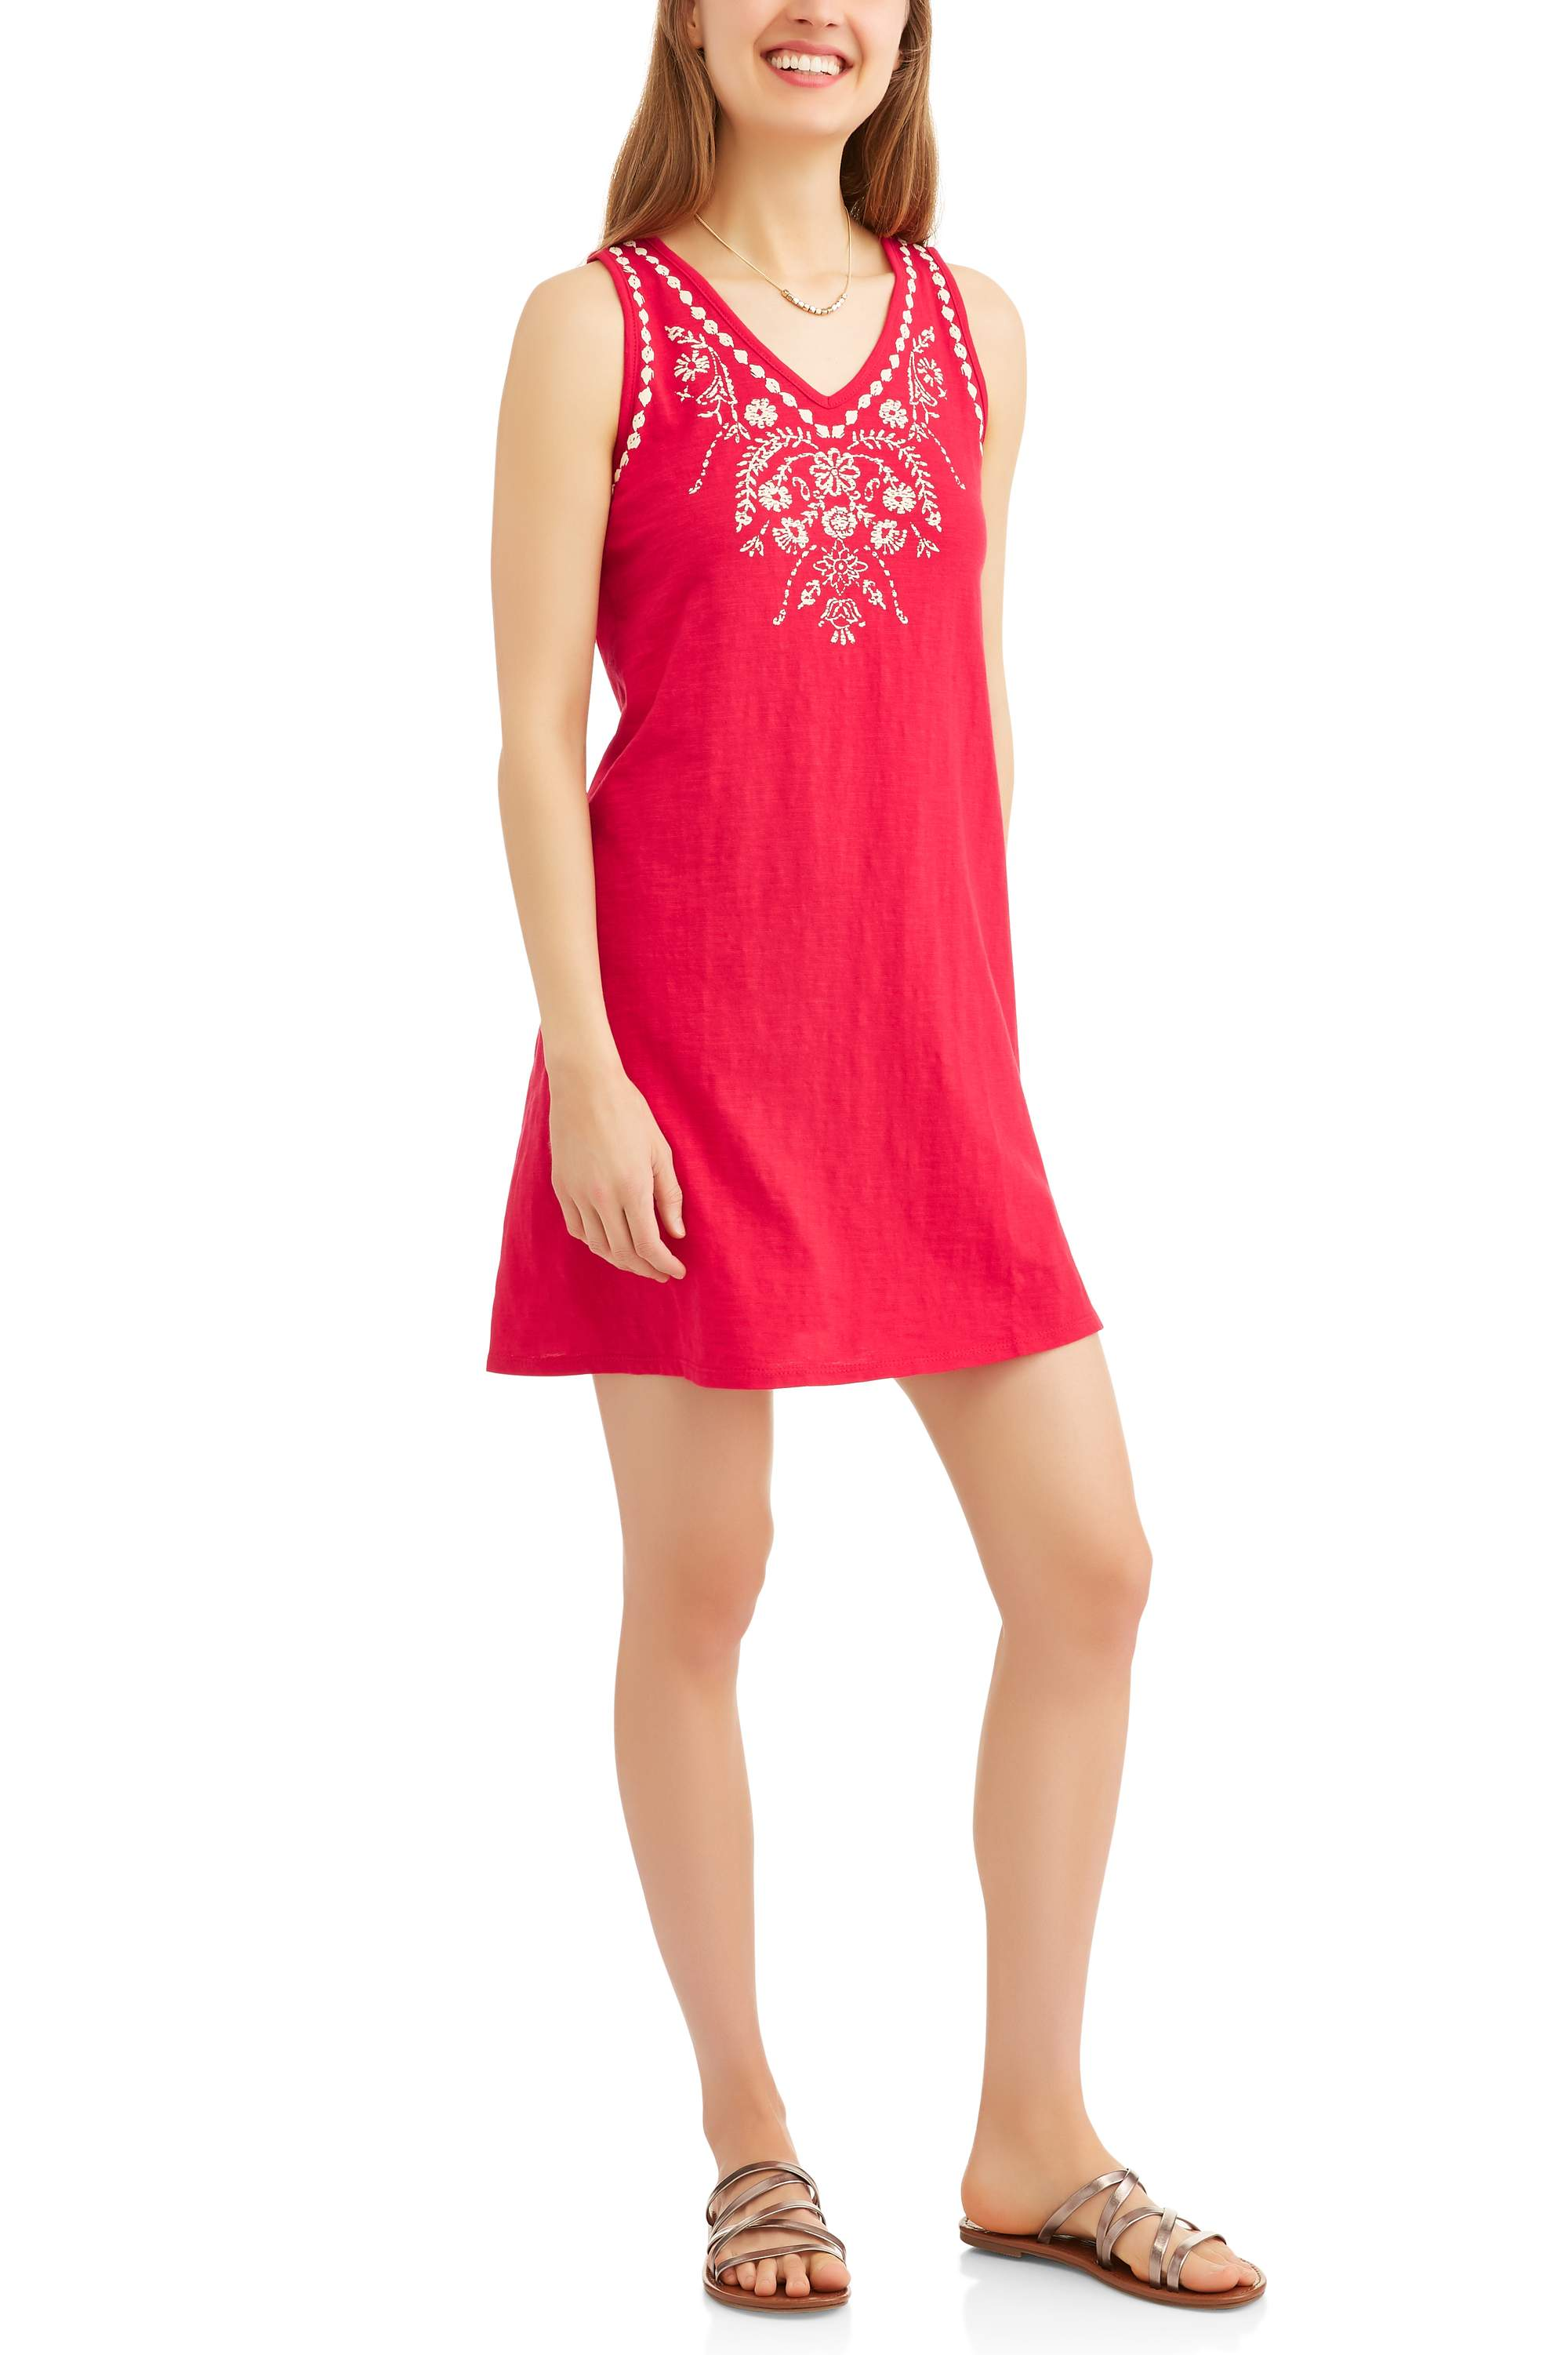 Moda Women's A-line Tank Dress with Embroidery